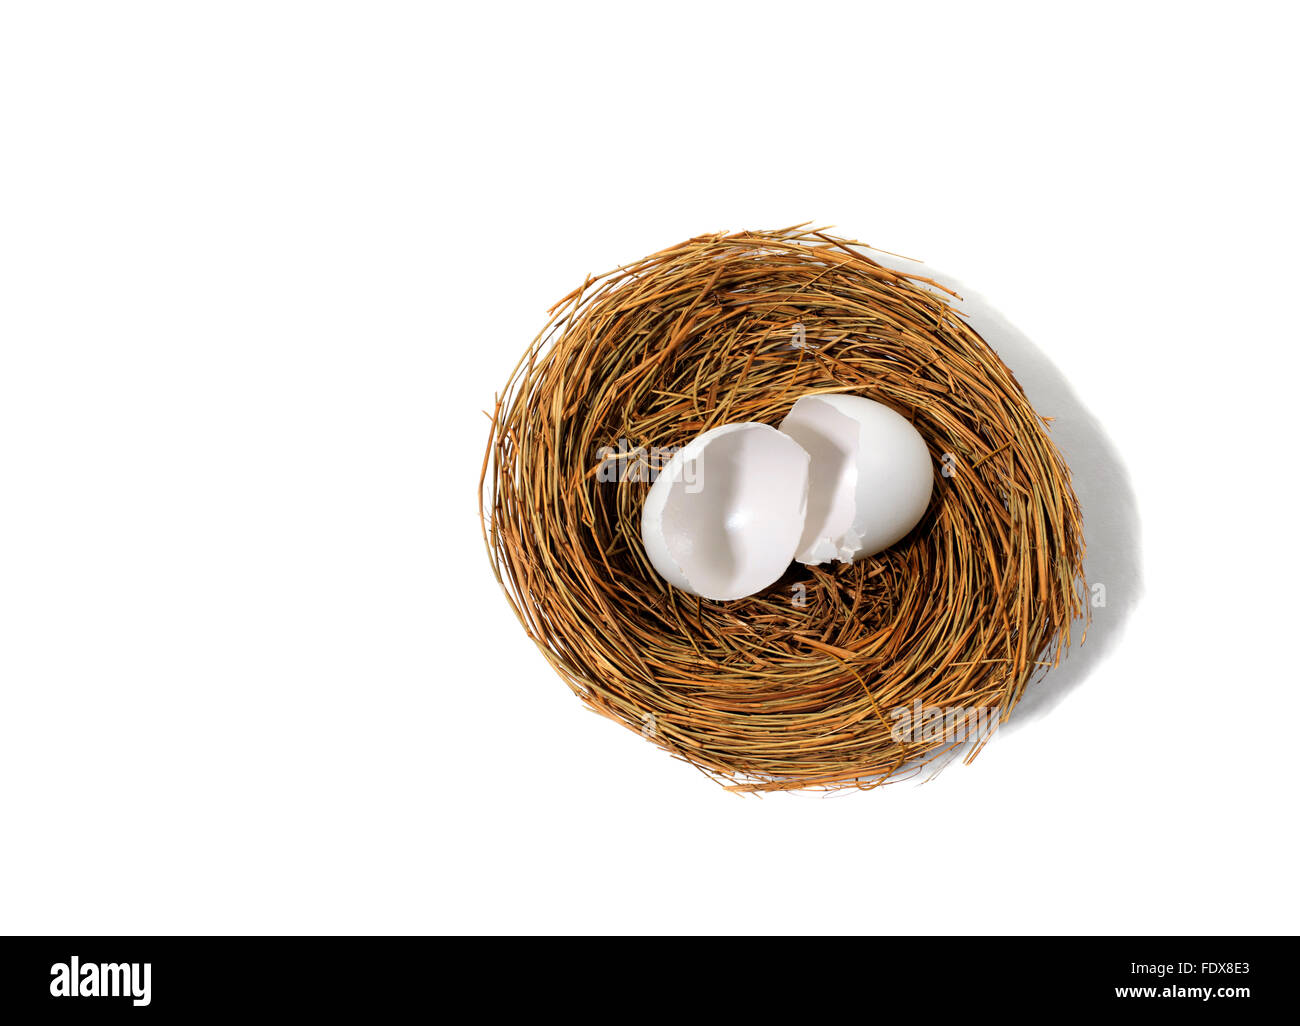 Studio shot of a Empty bird's nest with broken egg - Stock Image